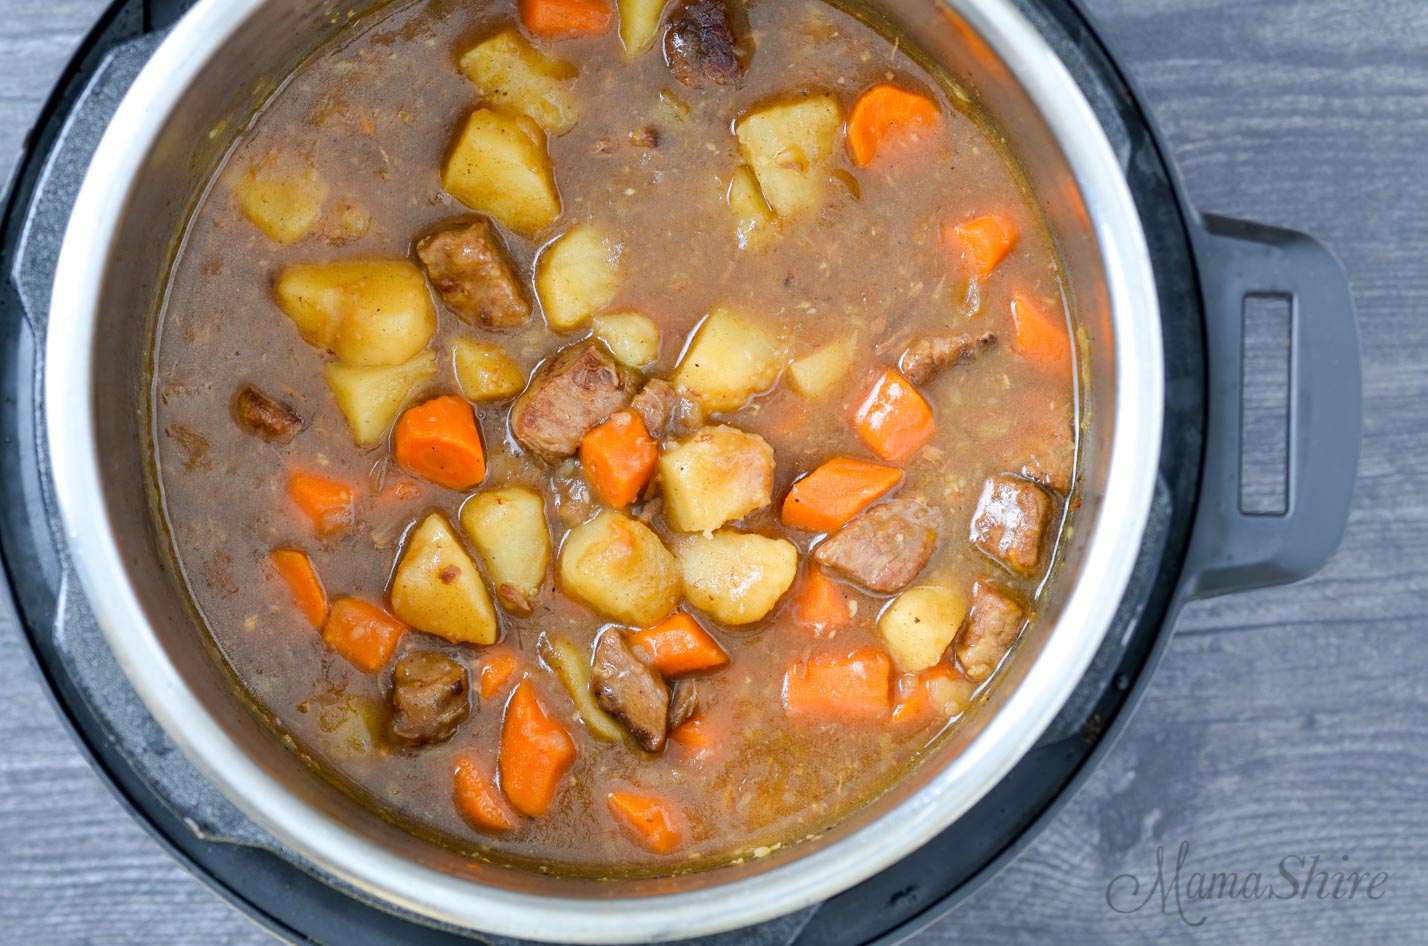 Traditional beef stew made in an Instant Pot